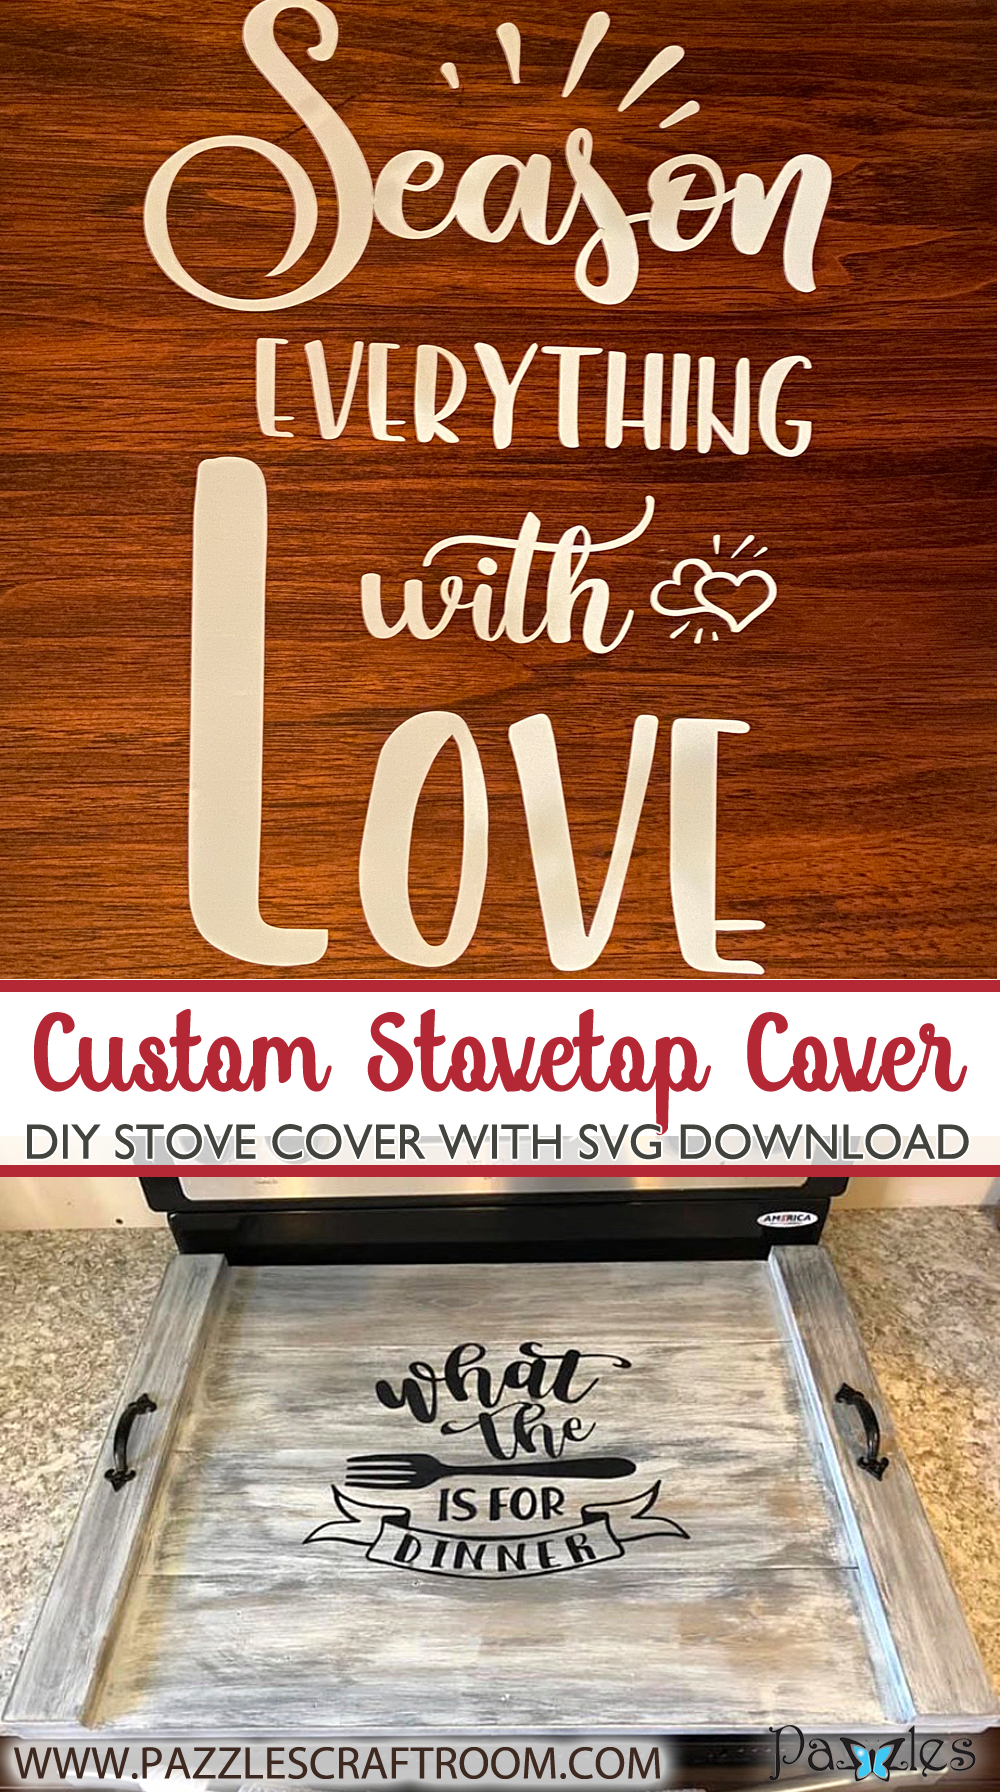 Pazzles DIY Stovetop Boards or Noodle Board with SVG instant download. Compatible with all major electronic cutters including Pazzles Inspiration, Cricut, and Silhouette Cameo.